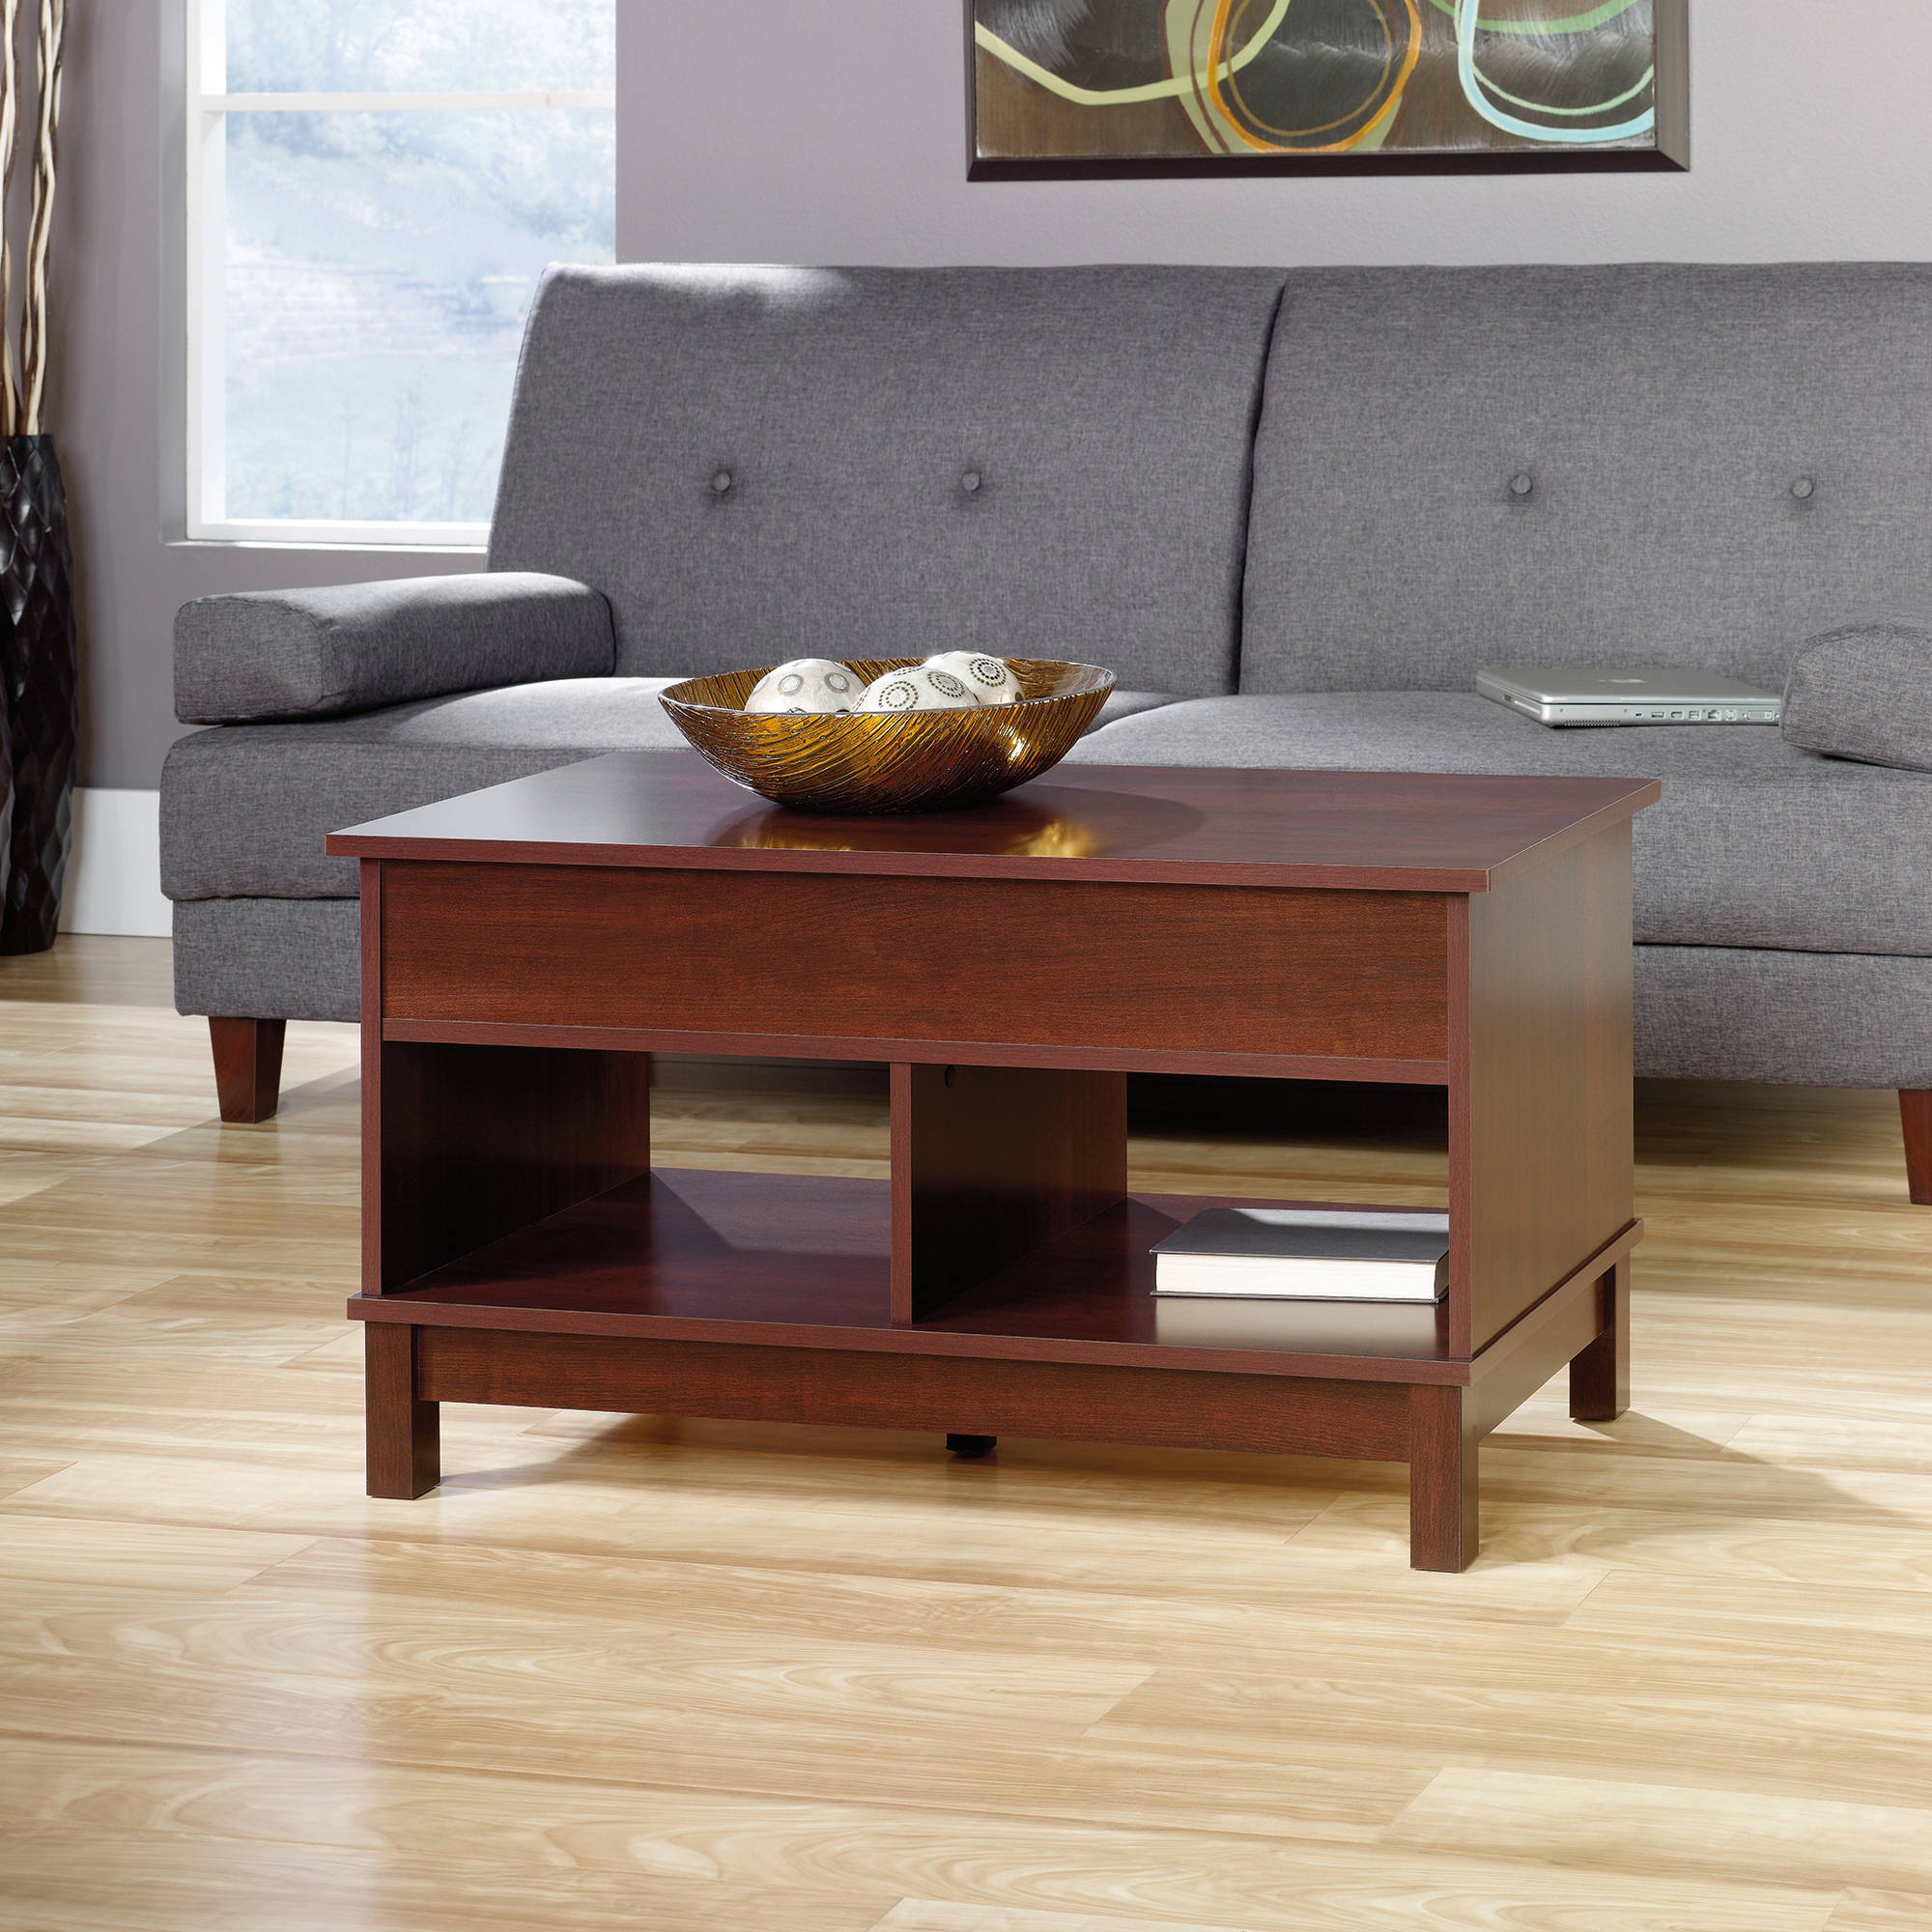 Sauder Kendall Square Lift Top Coffee Table, Cherry